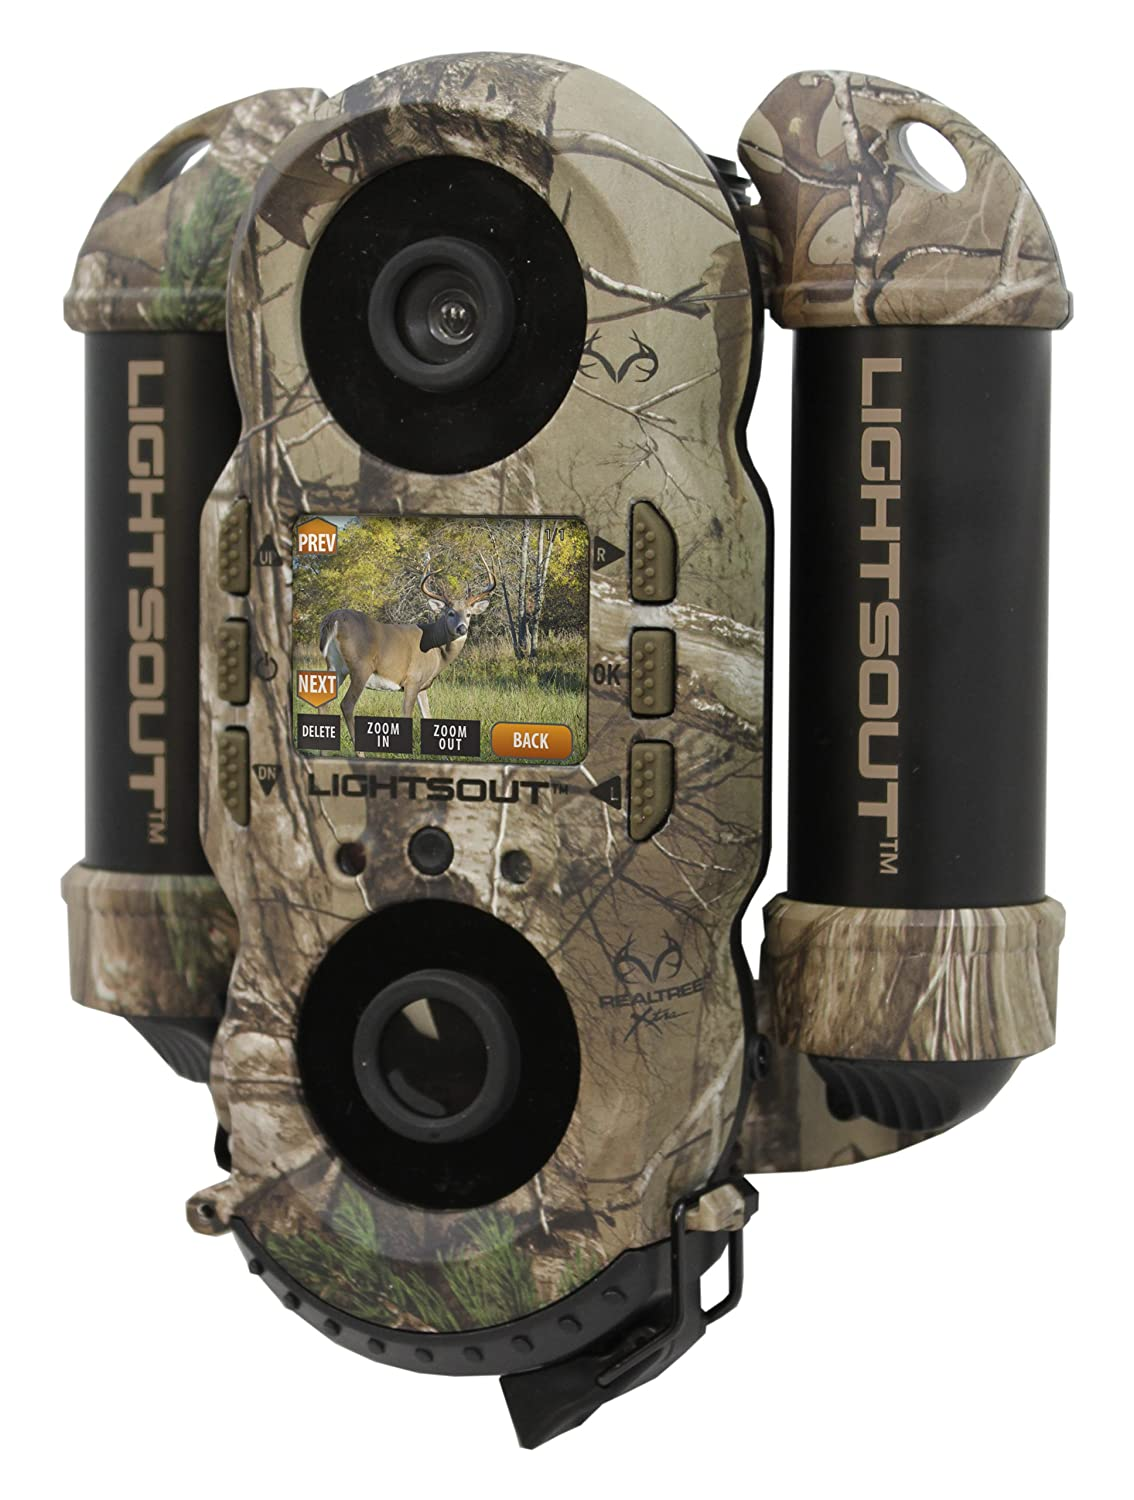 Amazon.com : Wildgame Innovations Crush 10X Lights Out Hunting Trail ...